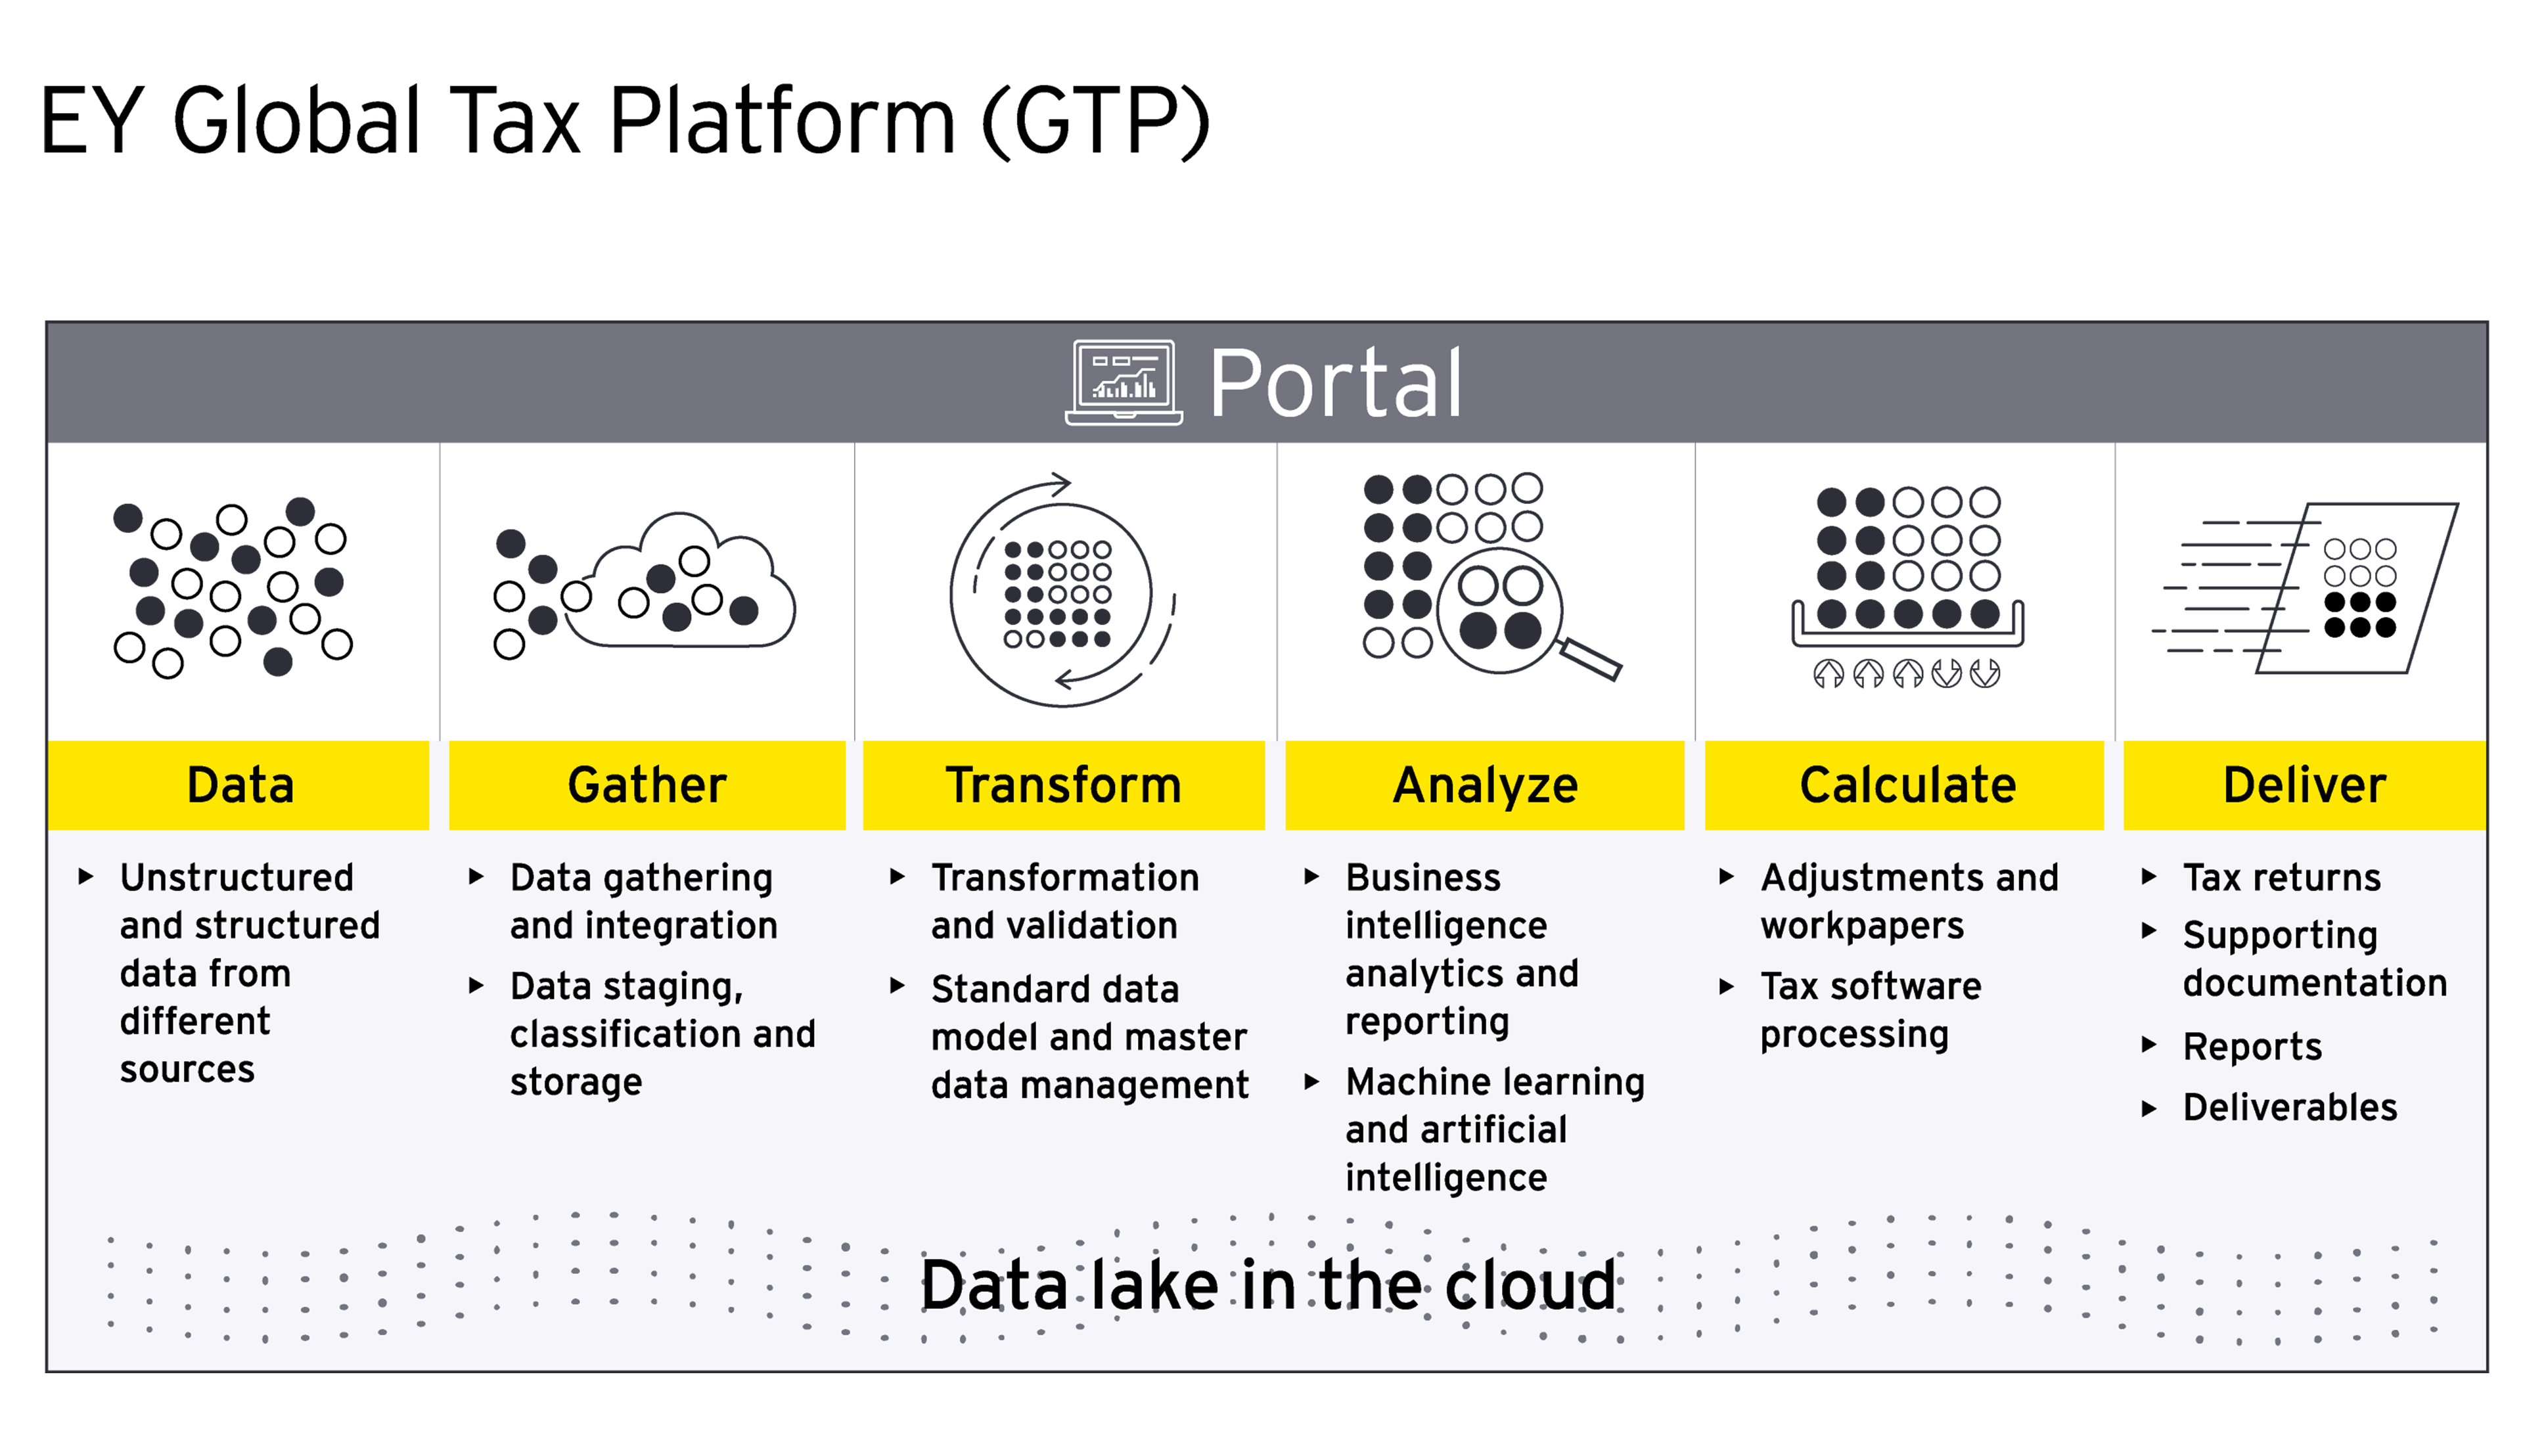 EY Gloal Tax Platform